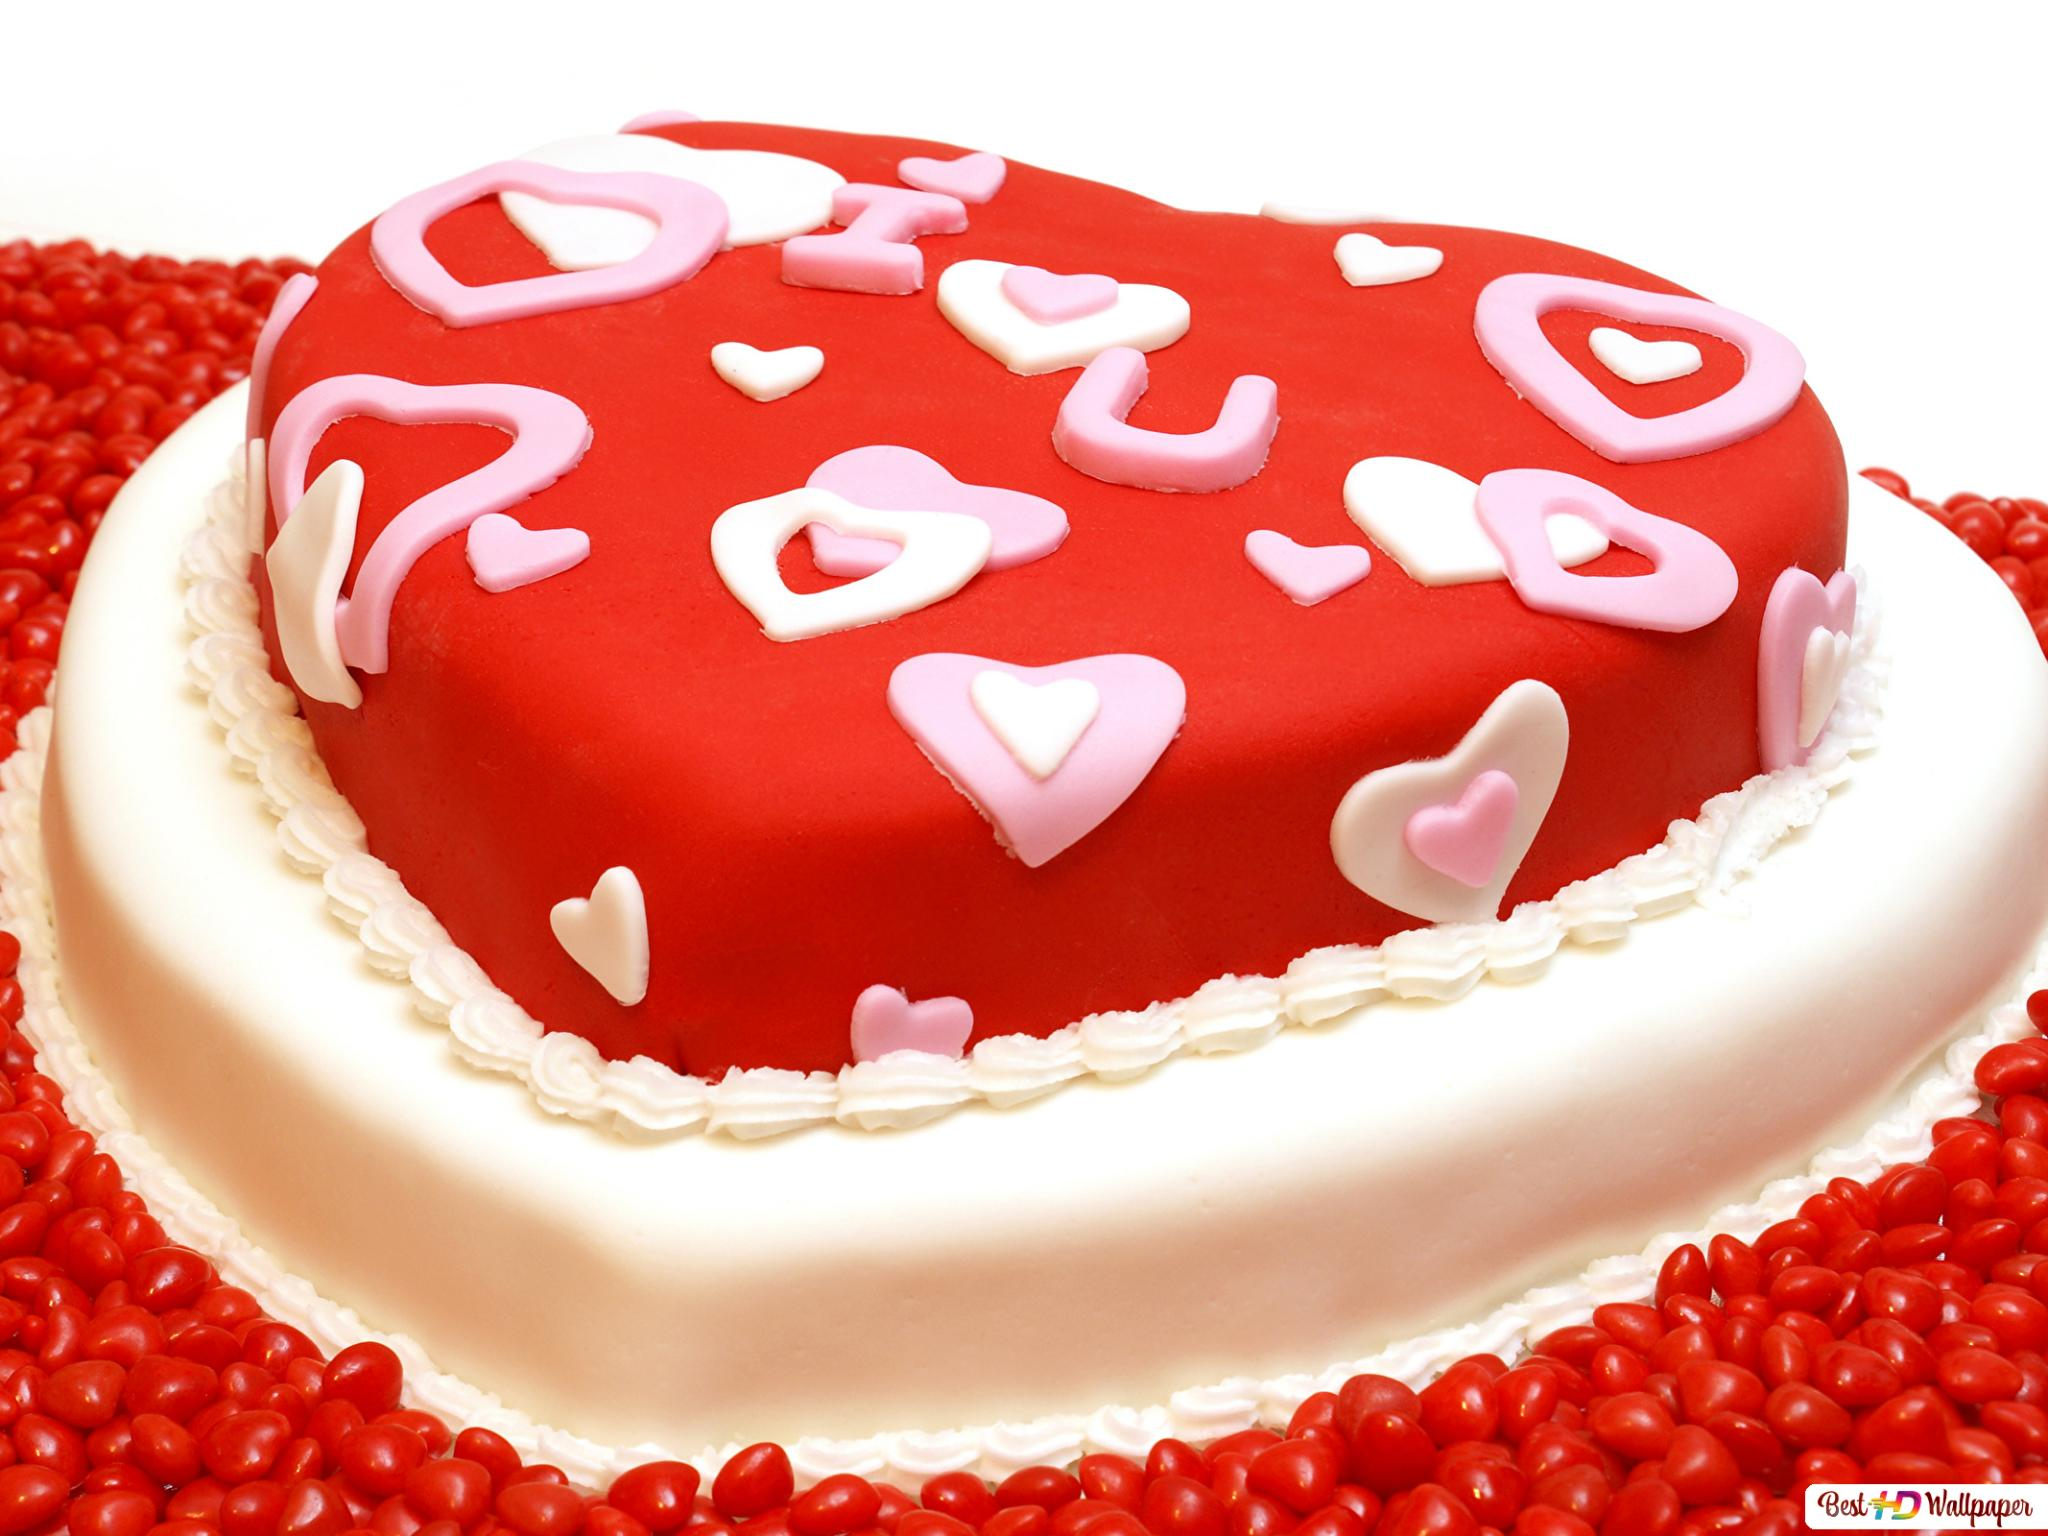 heart cake and candies HD wallpaper ...